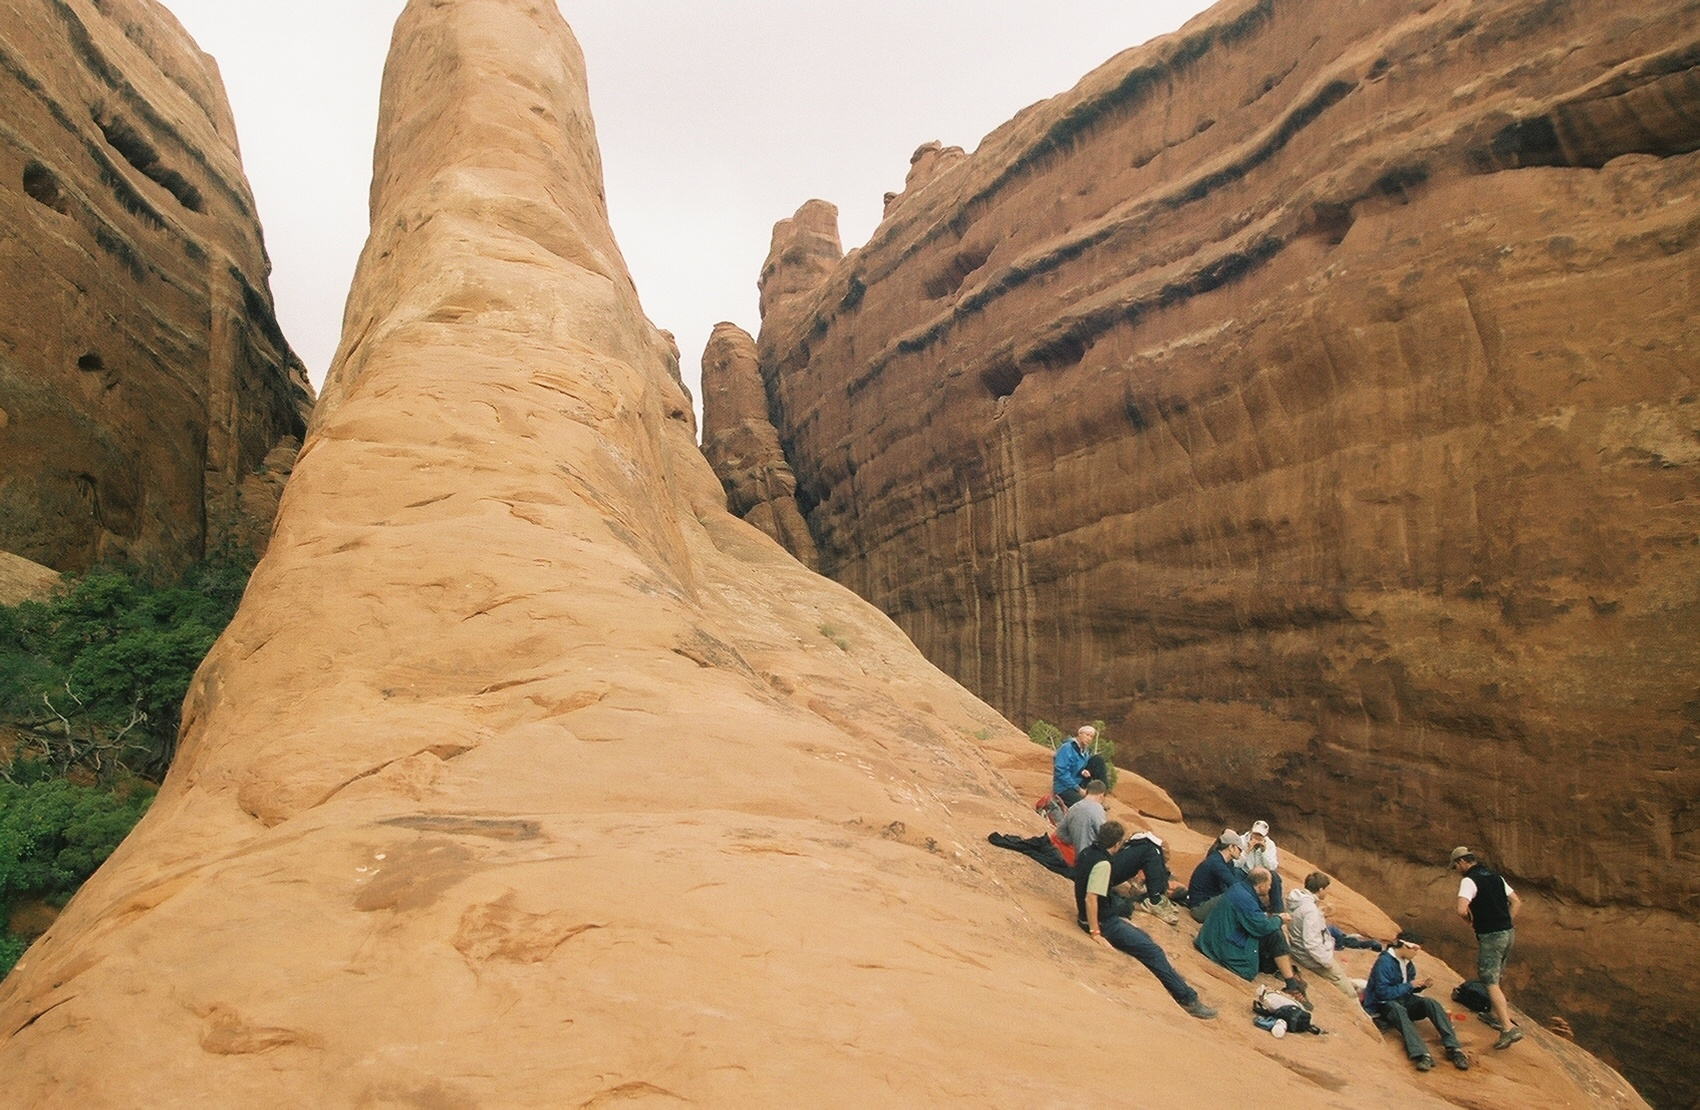 Participants sit on a smooth rock face as they take a break from canoeing to explore the side canyons of the Green River.